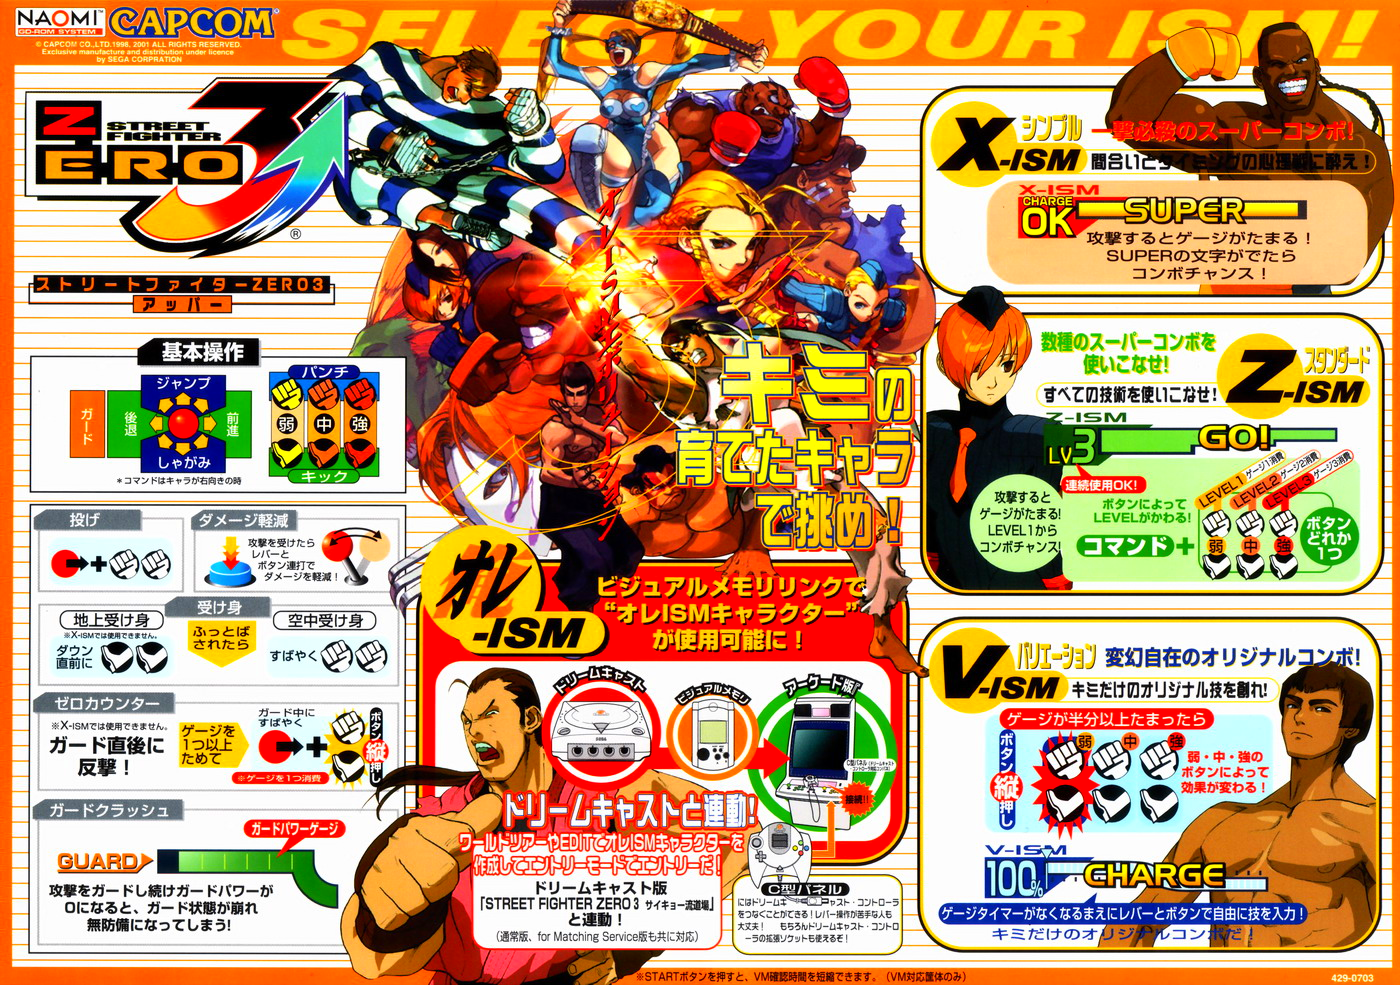 Street Fighter Zero 3 (Japan 980904) flyer